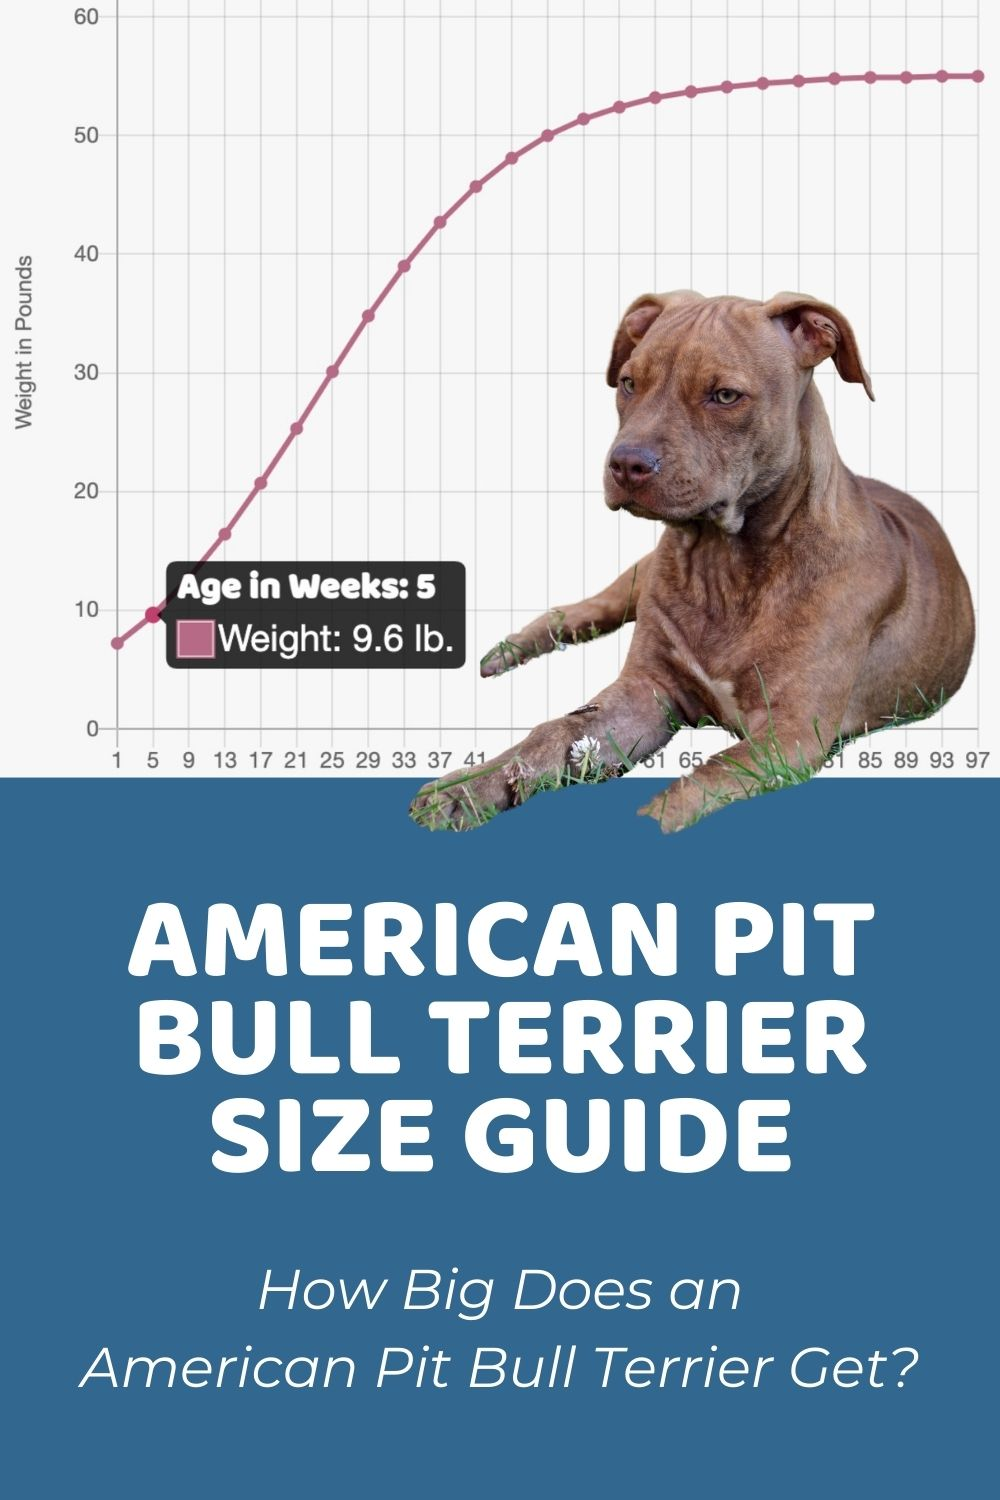 American Pit Bull Terrier Size Guide_ How Big Does an American Pit Bull Terrier Get_